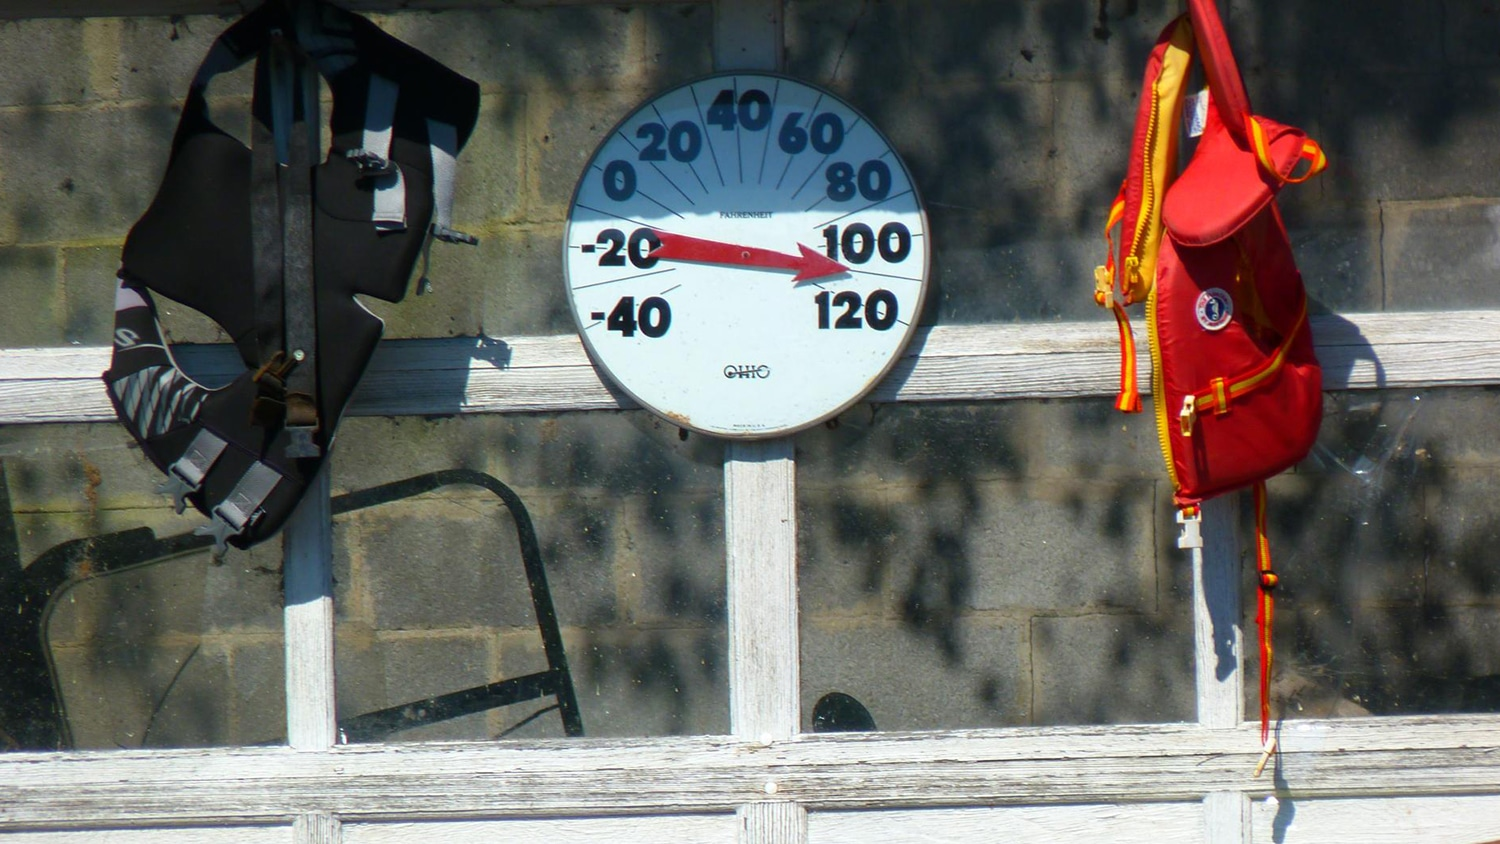 thermometer showing a temperature above 100 degrees fahrenheit